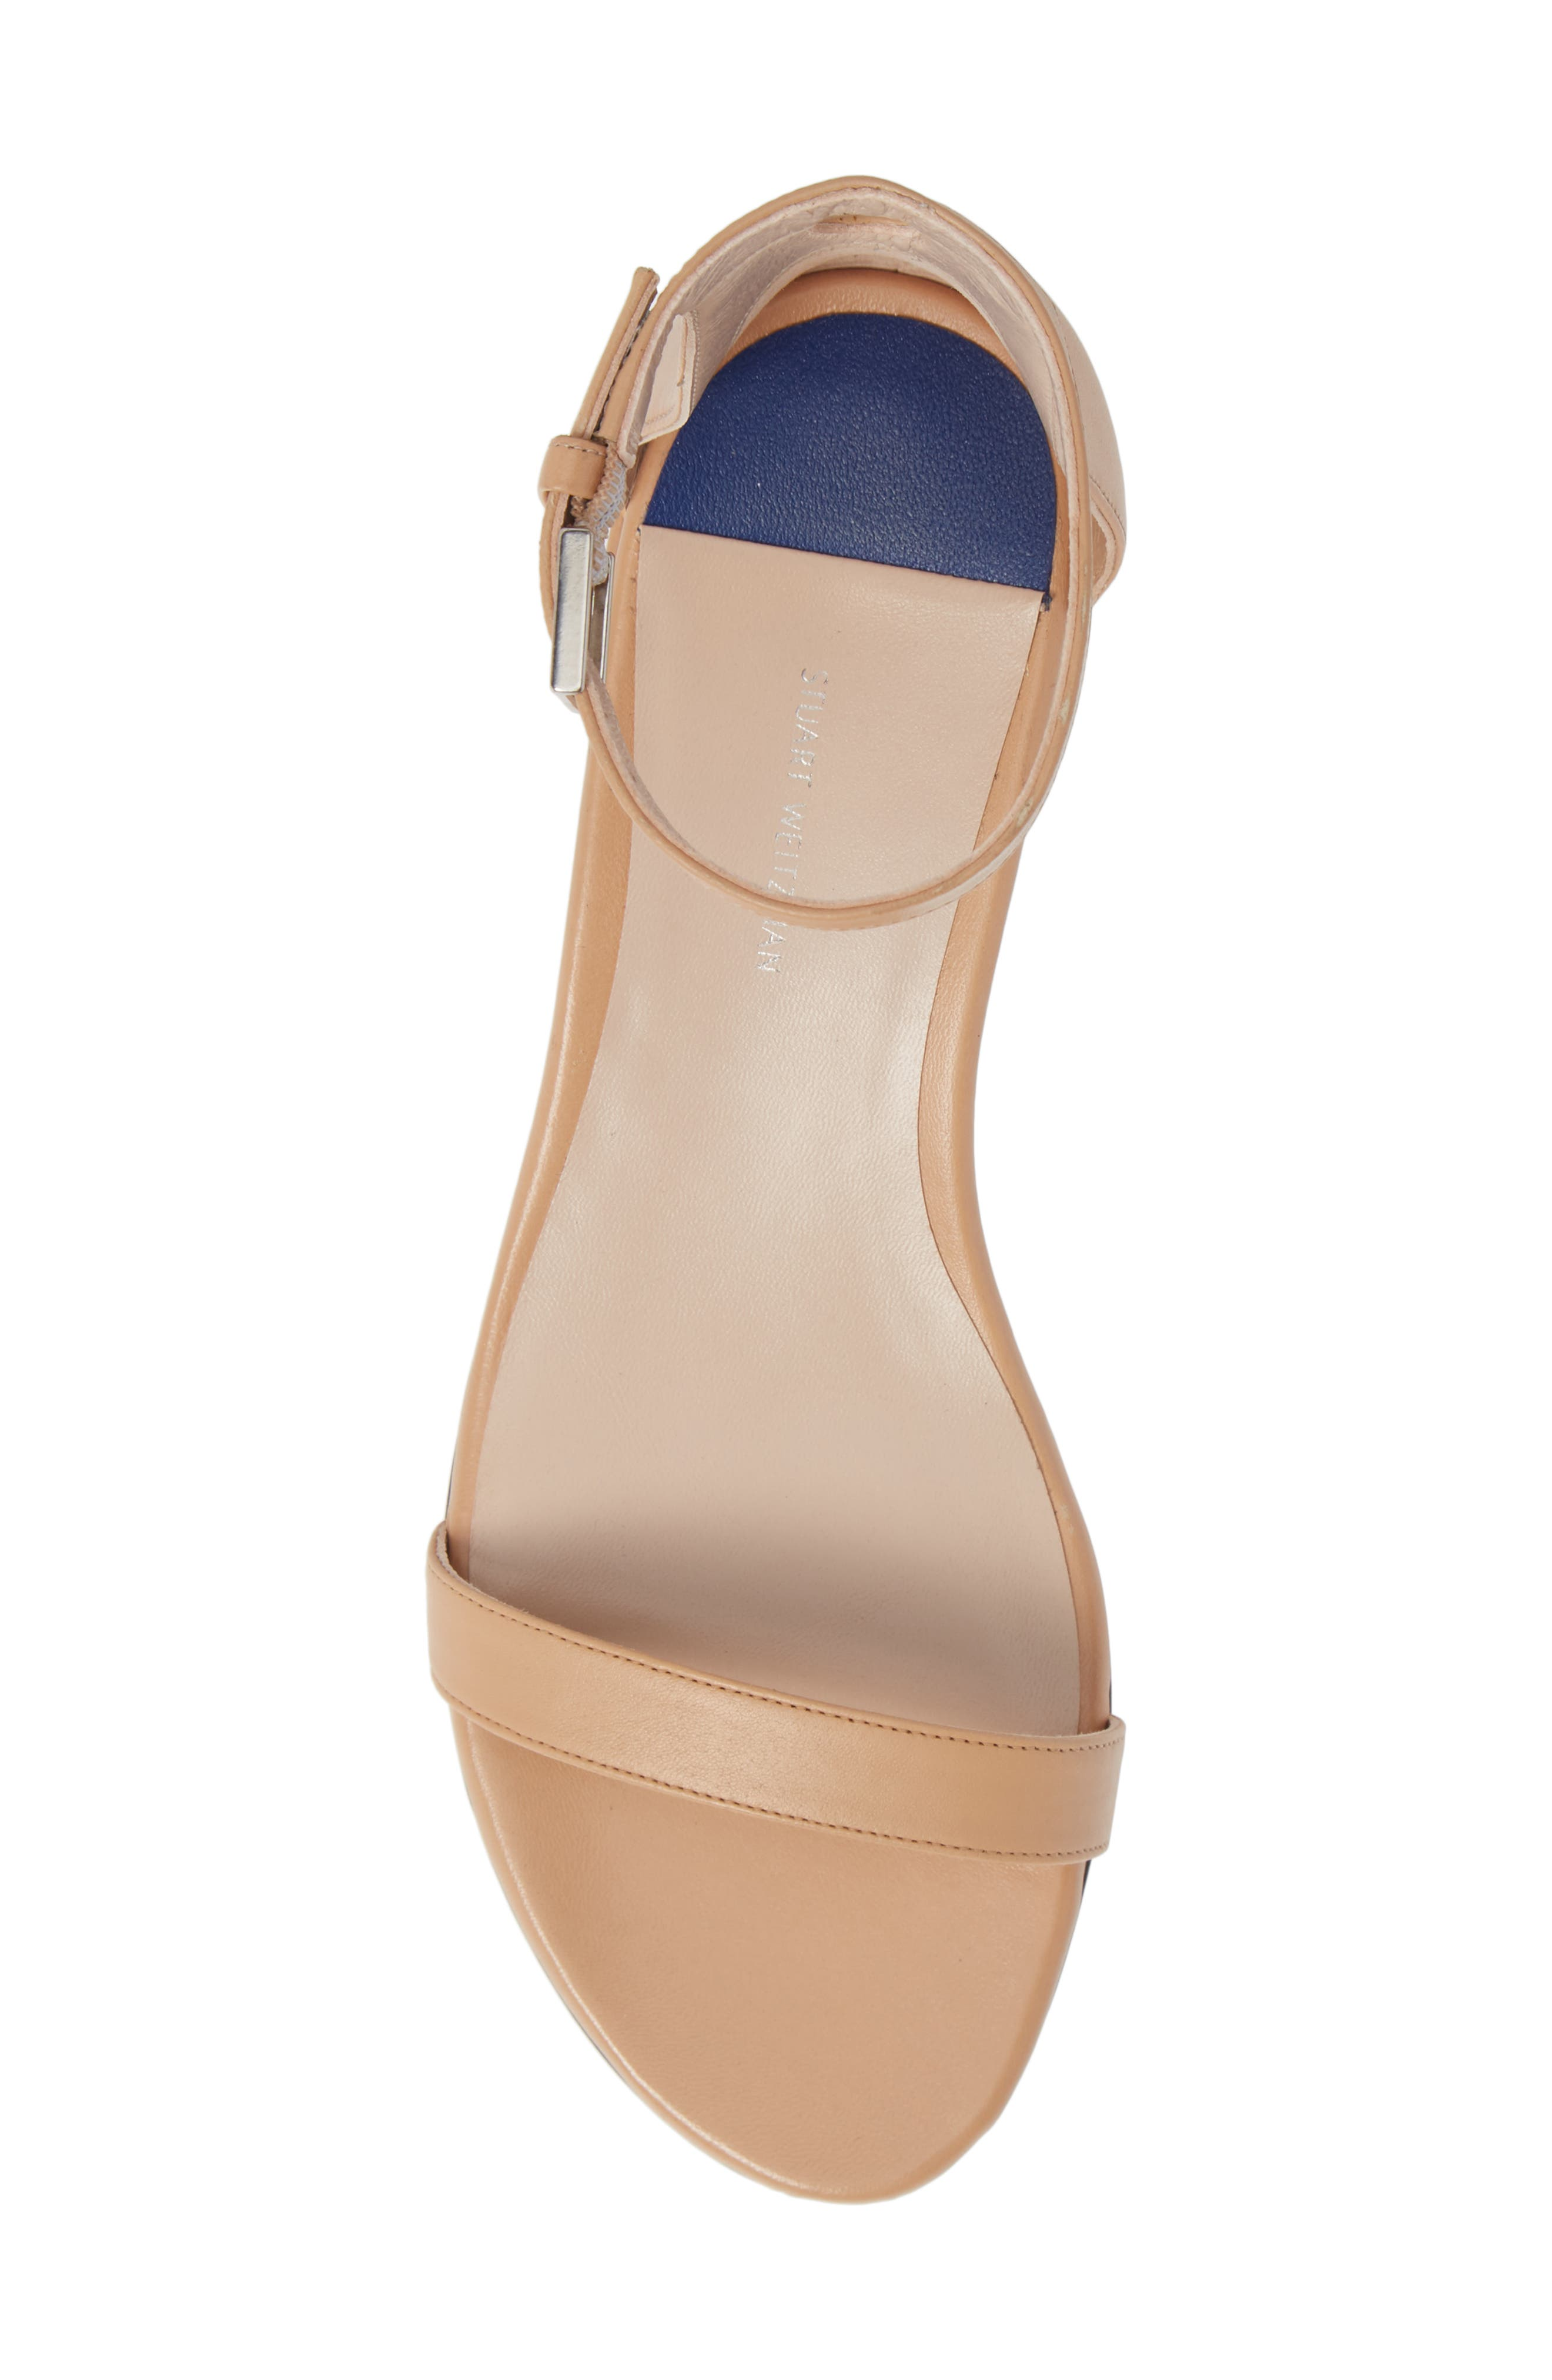 STUART WEITZMAN,                             Nudist Sandal,                             Alternate thumbnail 5, color,                             273